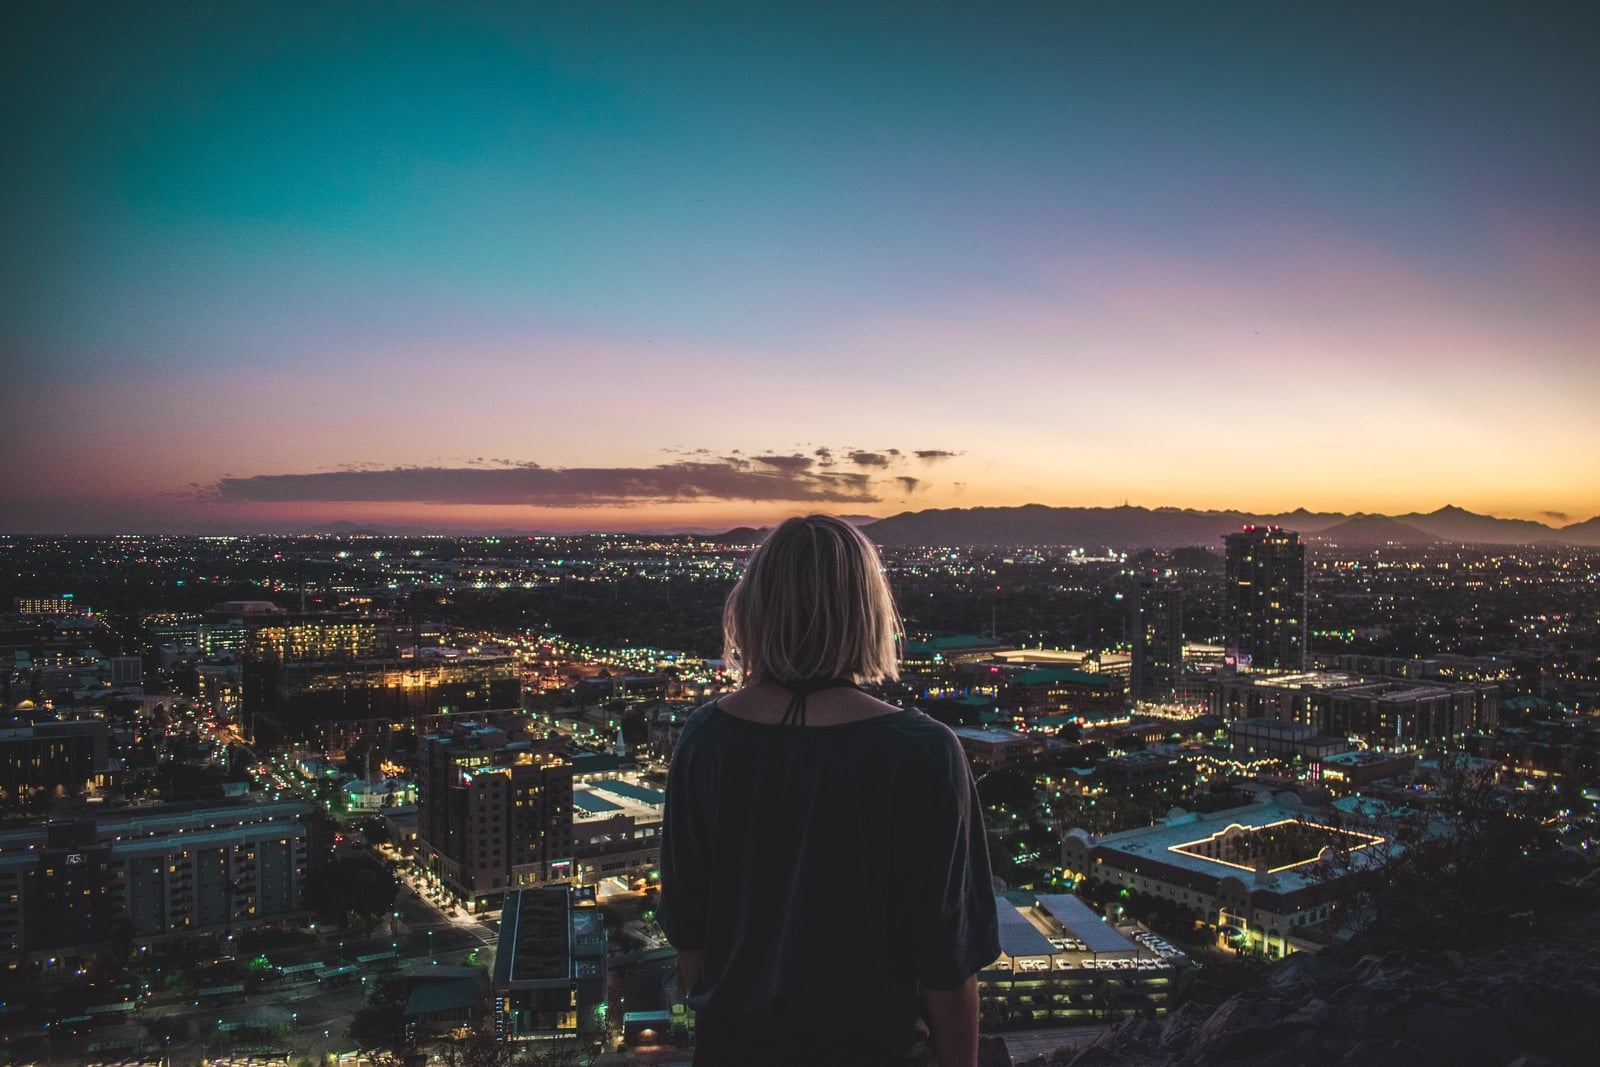 woman in black shirt standing on top of building looking at city lights during night time